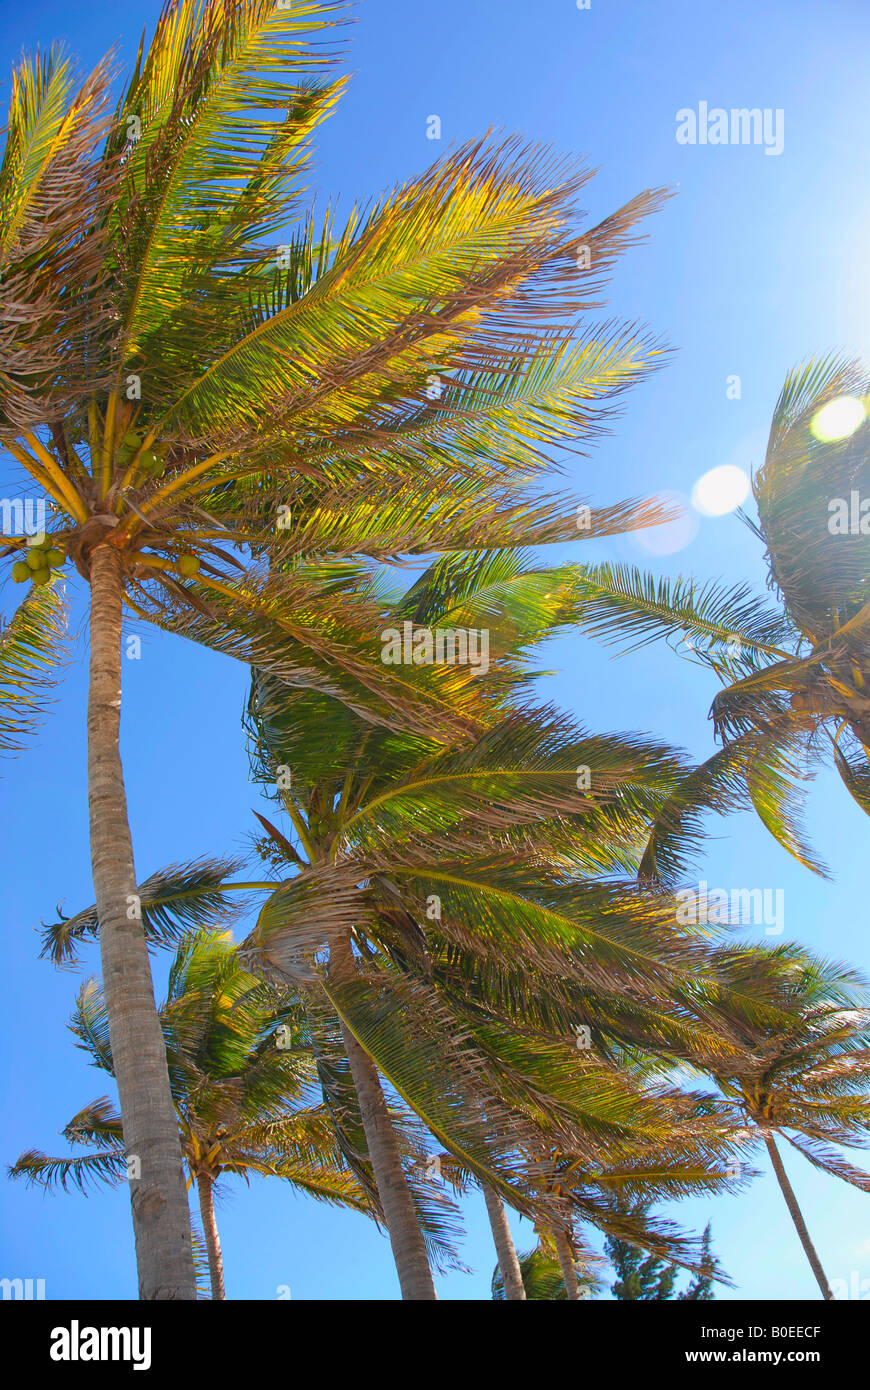 Palm trees in the sun - Stock Image